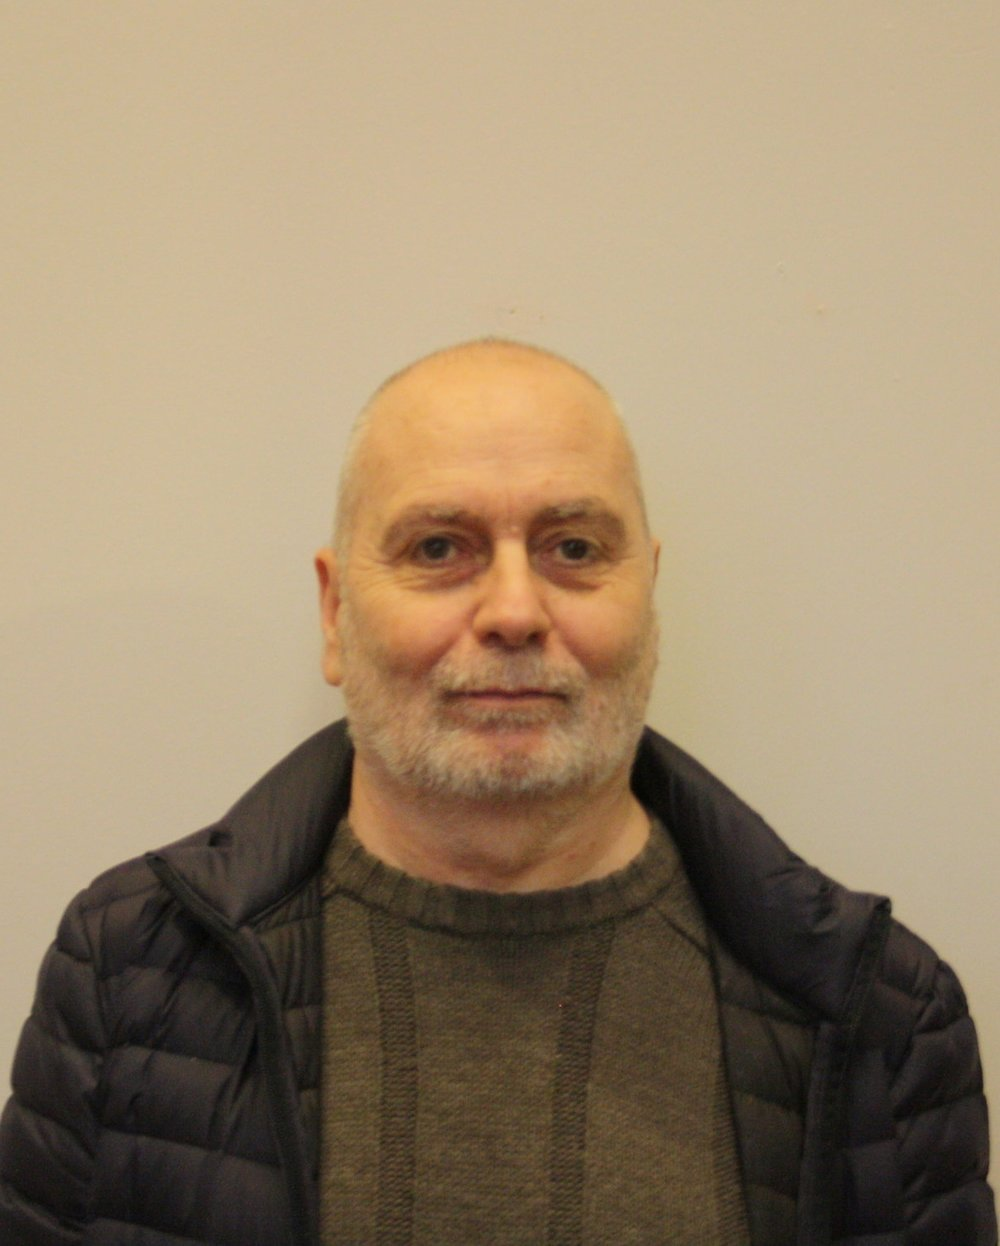 Derek Mounsey -Church Warden .  Having previously worked in retail management, he now enjoys retirement with his wife Rita, his two daughters, and his three grandsons. His hobbies include reading, listening to music, and collecting model trucks.